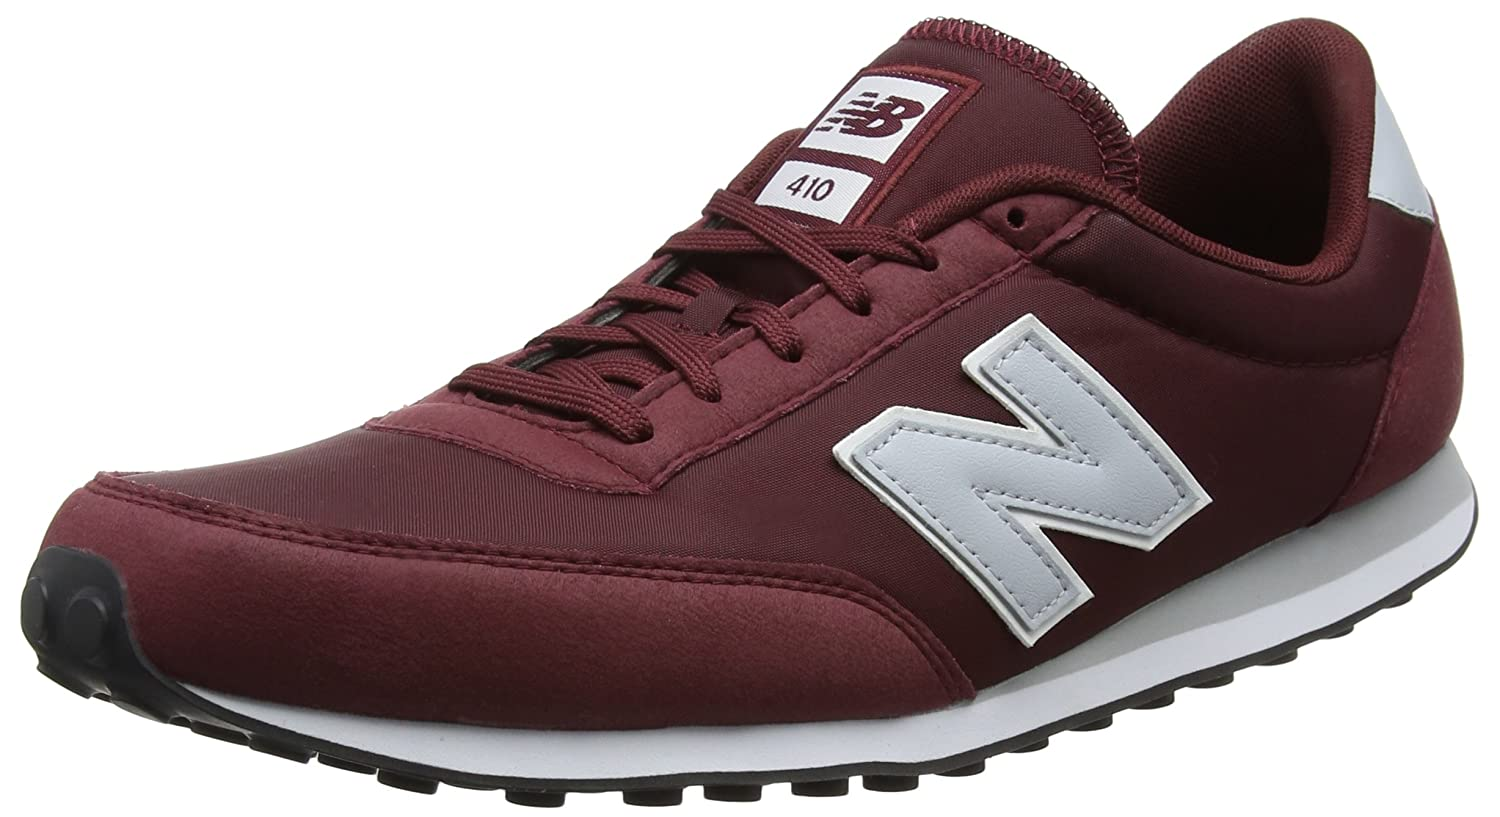 TALLA 40.5 EU. New Balance 410, Zapatillas Unisex Adulto